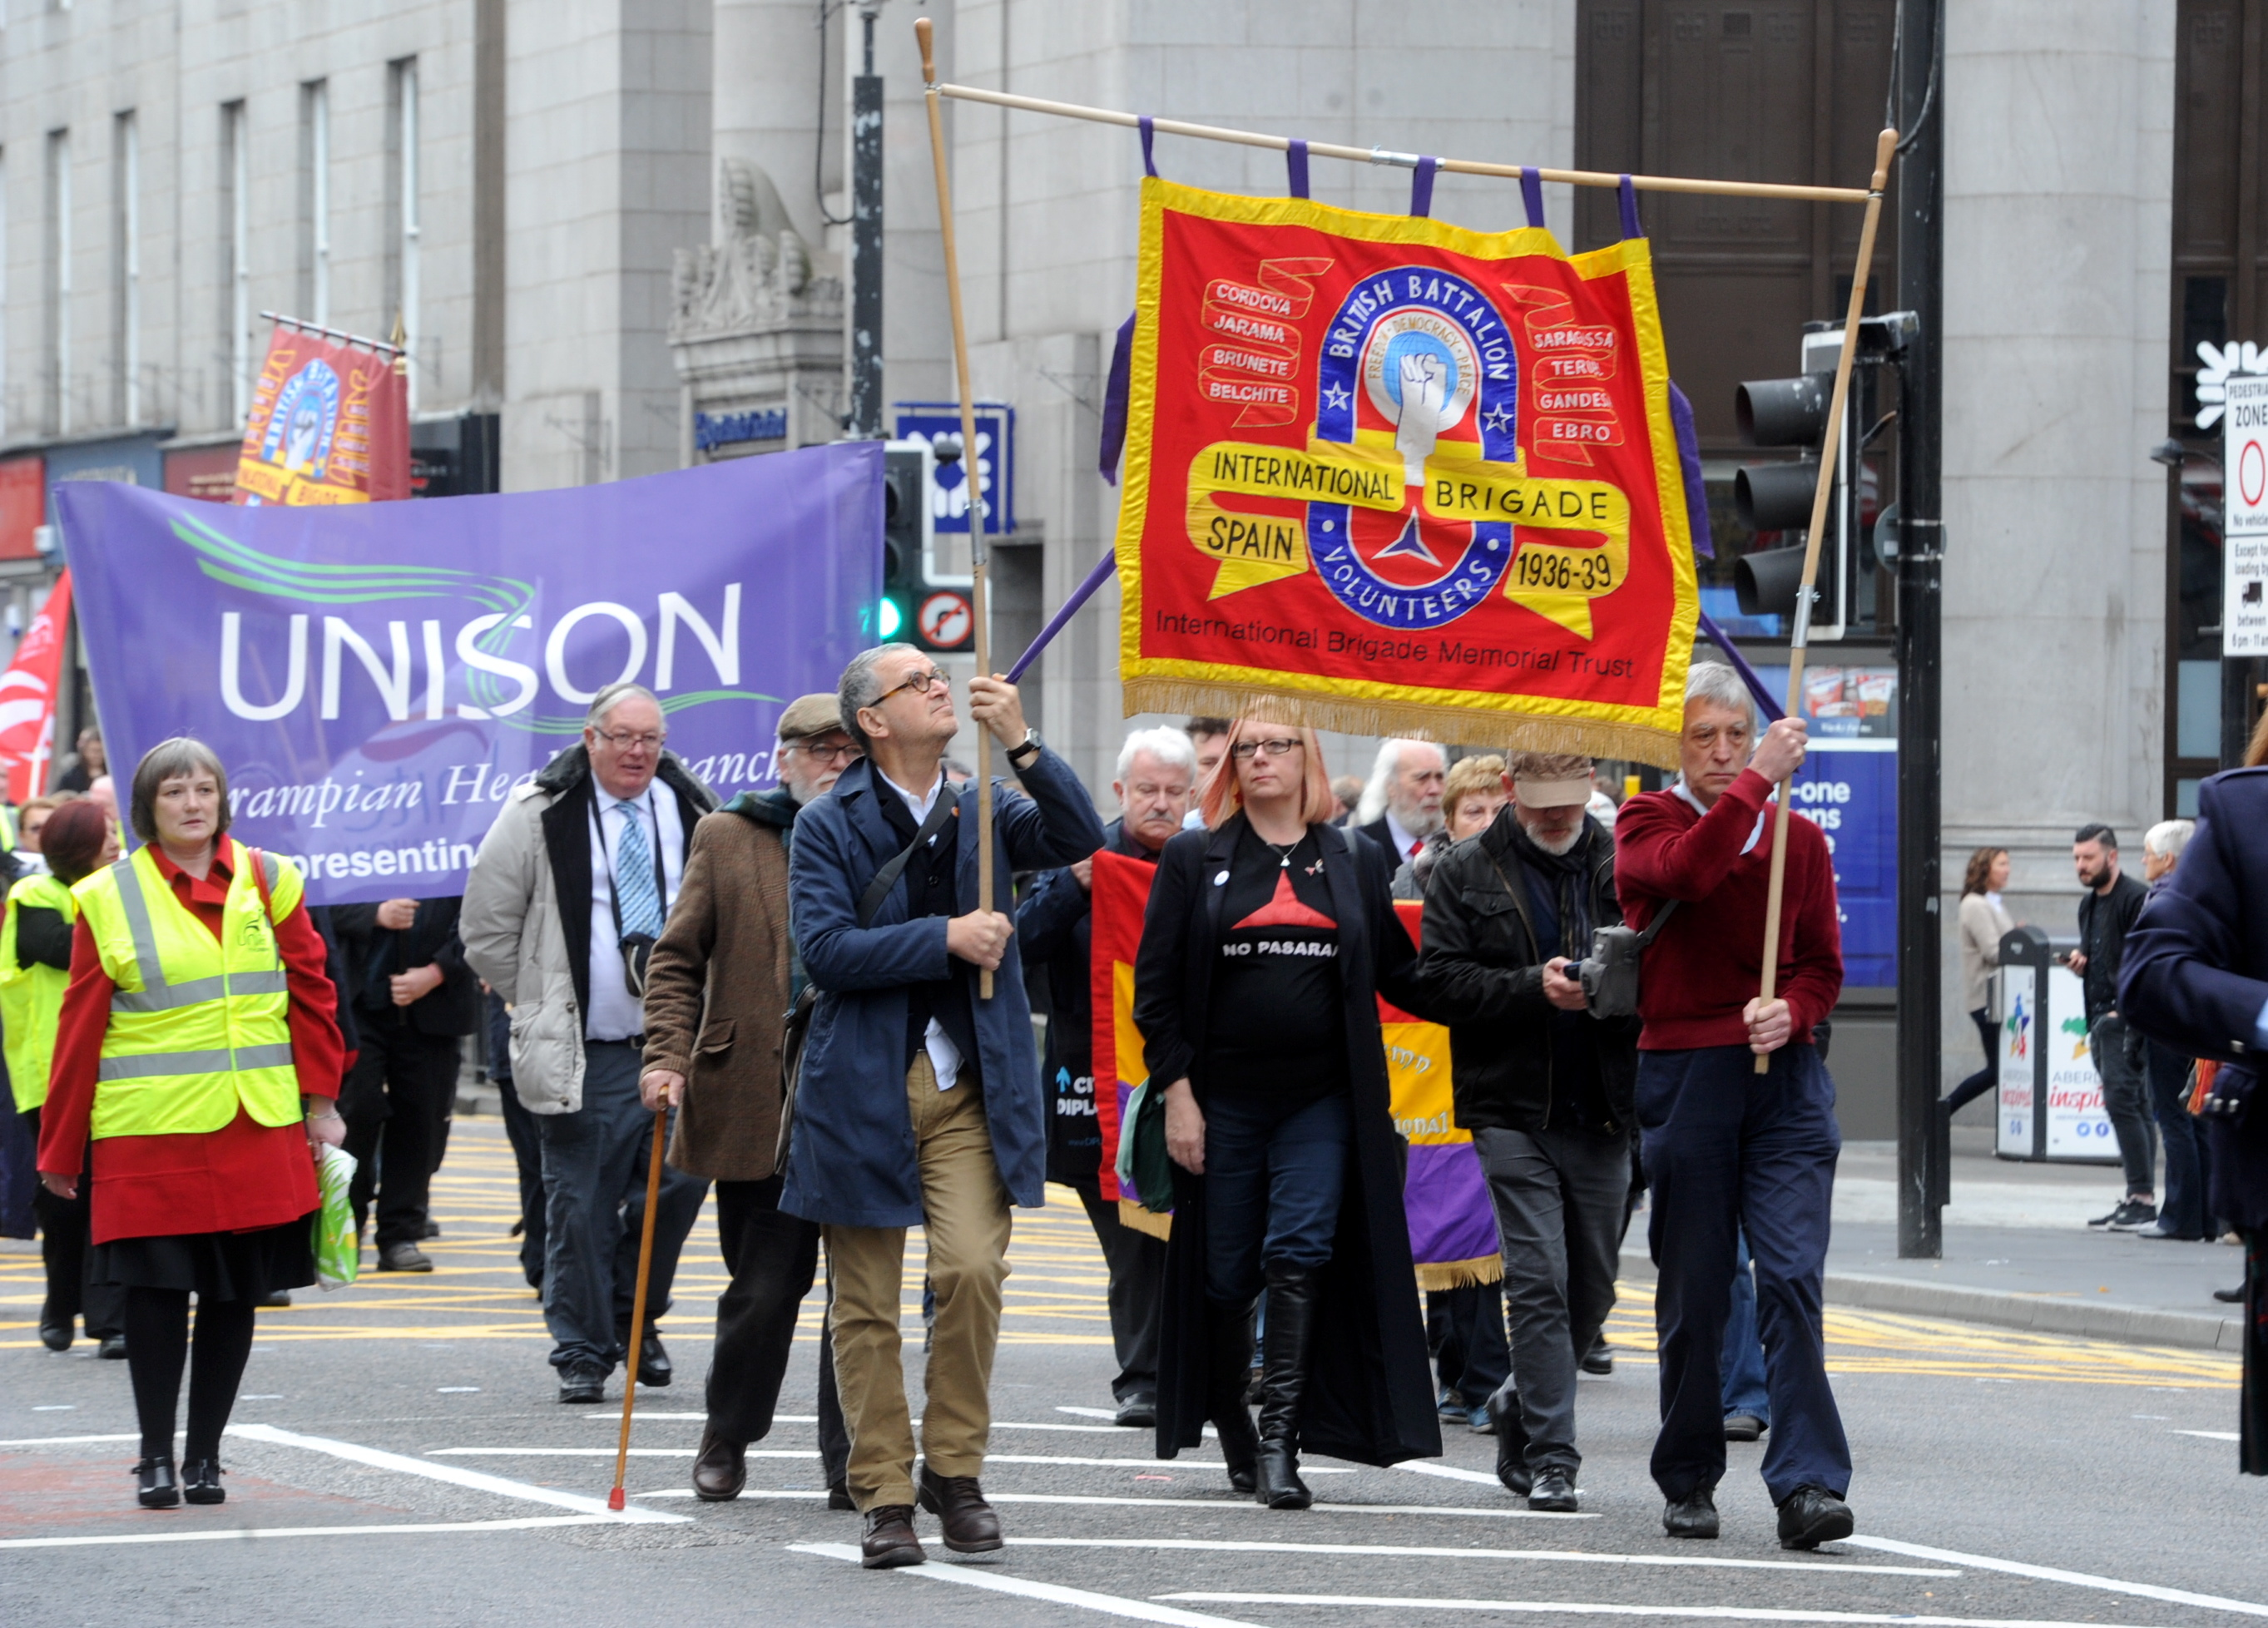 A march was held in 2015 on Aberdeen's Union Street to remember those who fought in  the Spanish Civil War of 1936-39